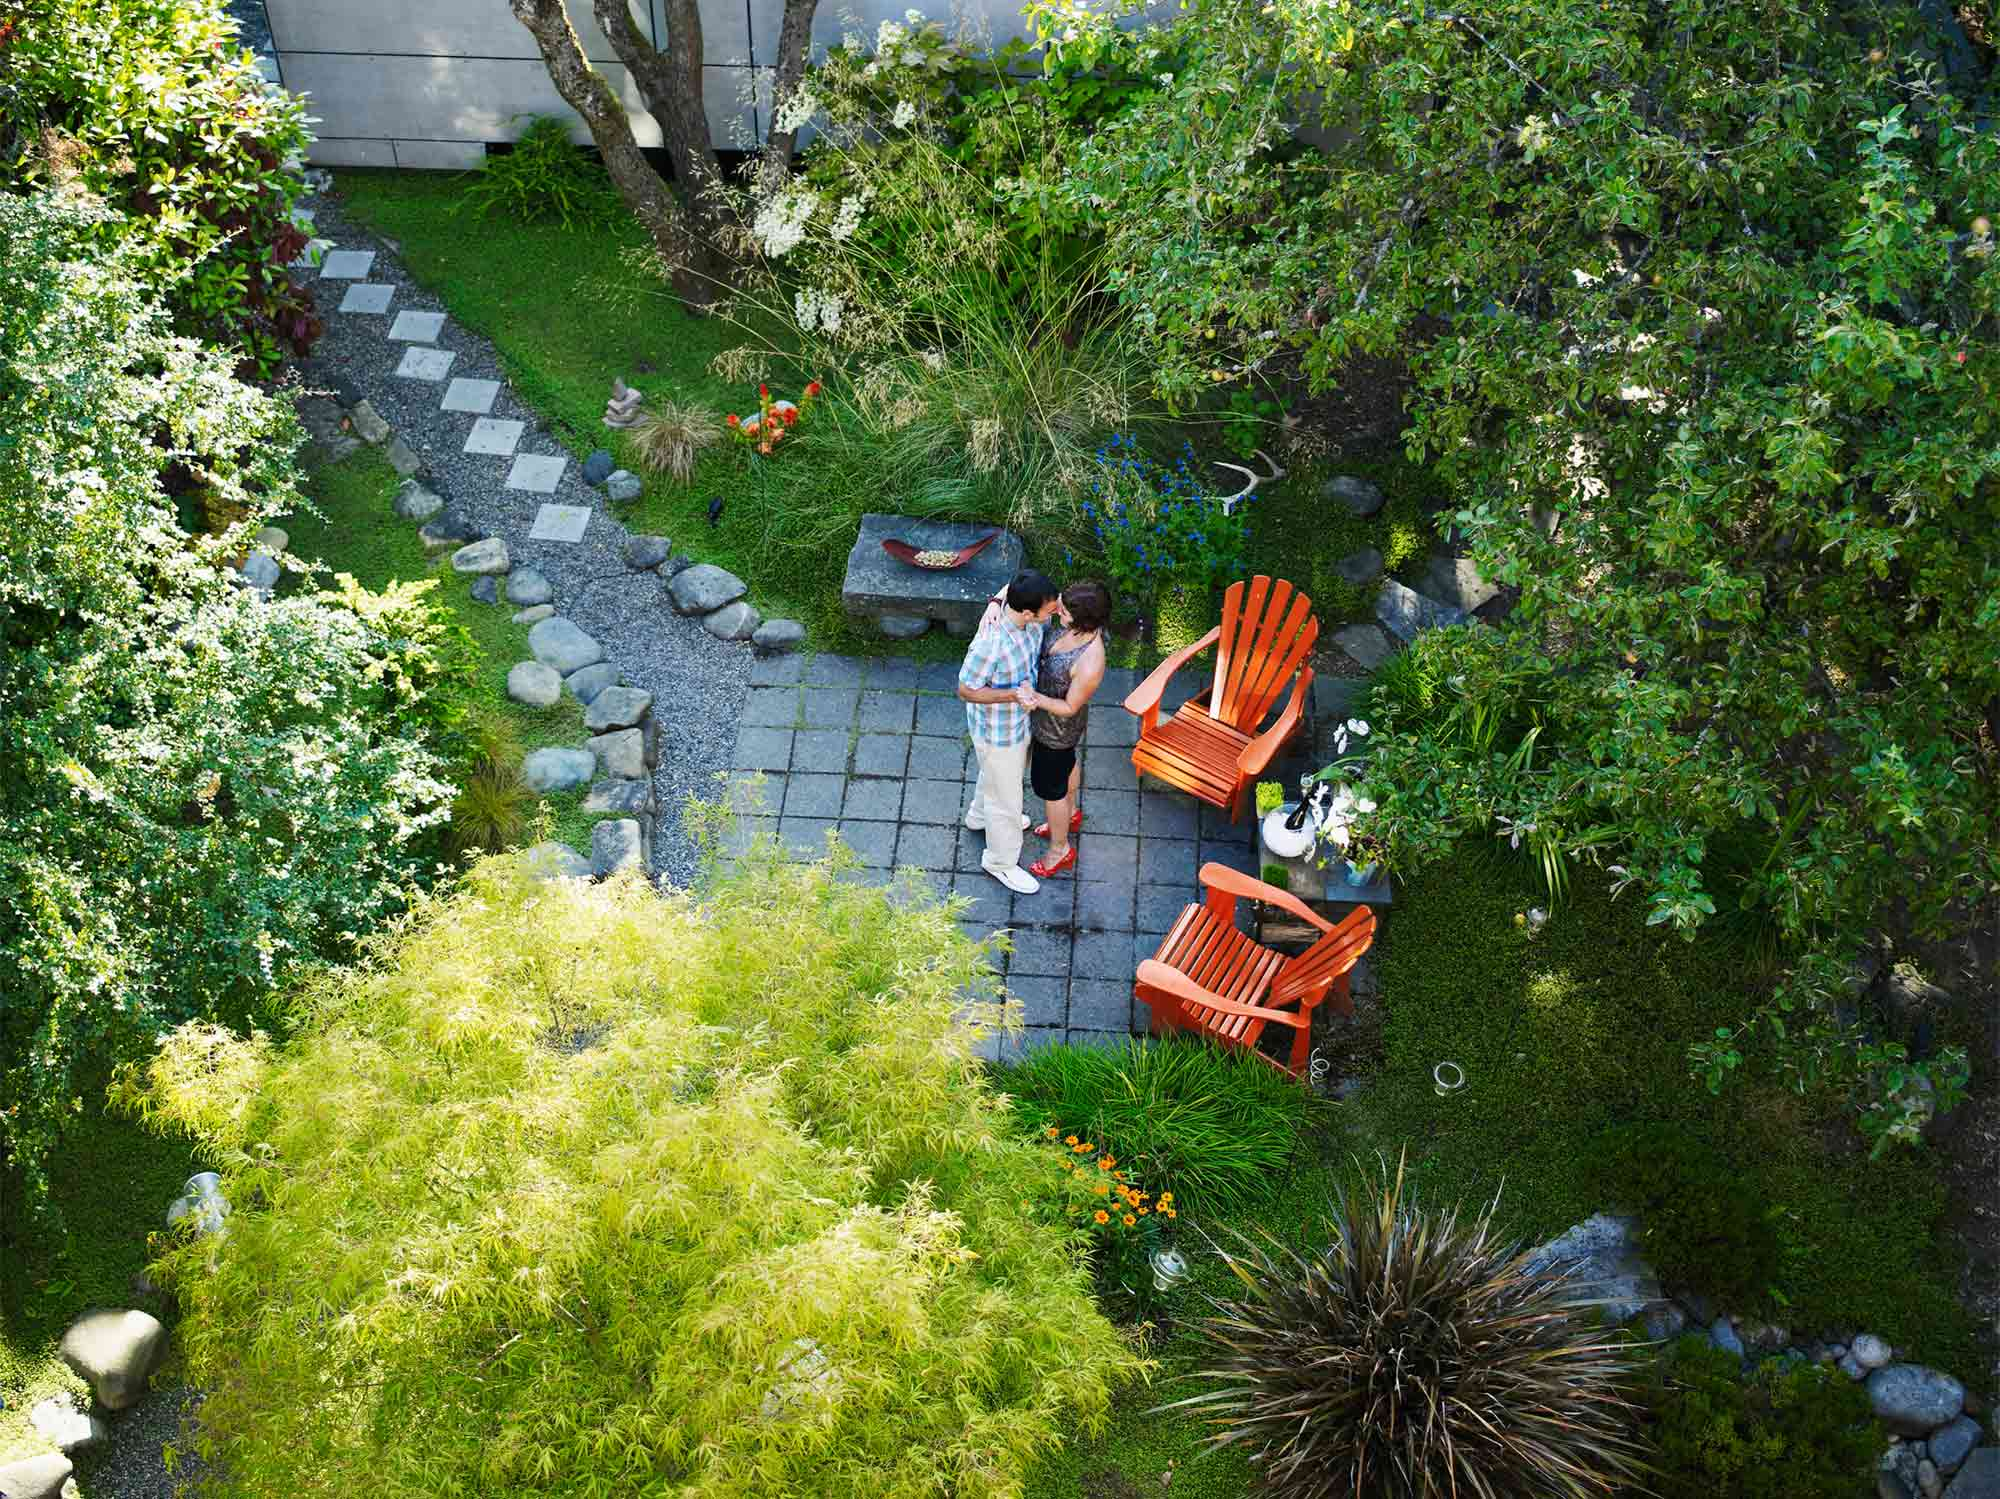 Garden Design Ideas with Pebbles and Pavers - realestate ... on Pebble Yard Ideas id=70349